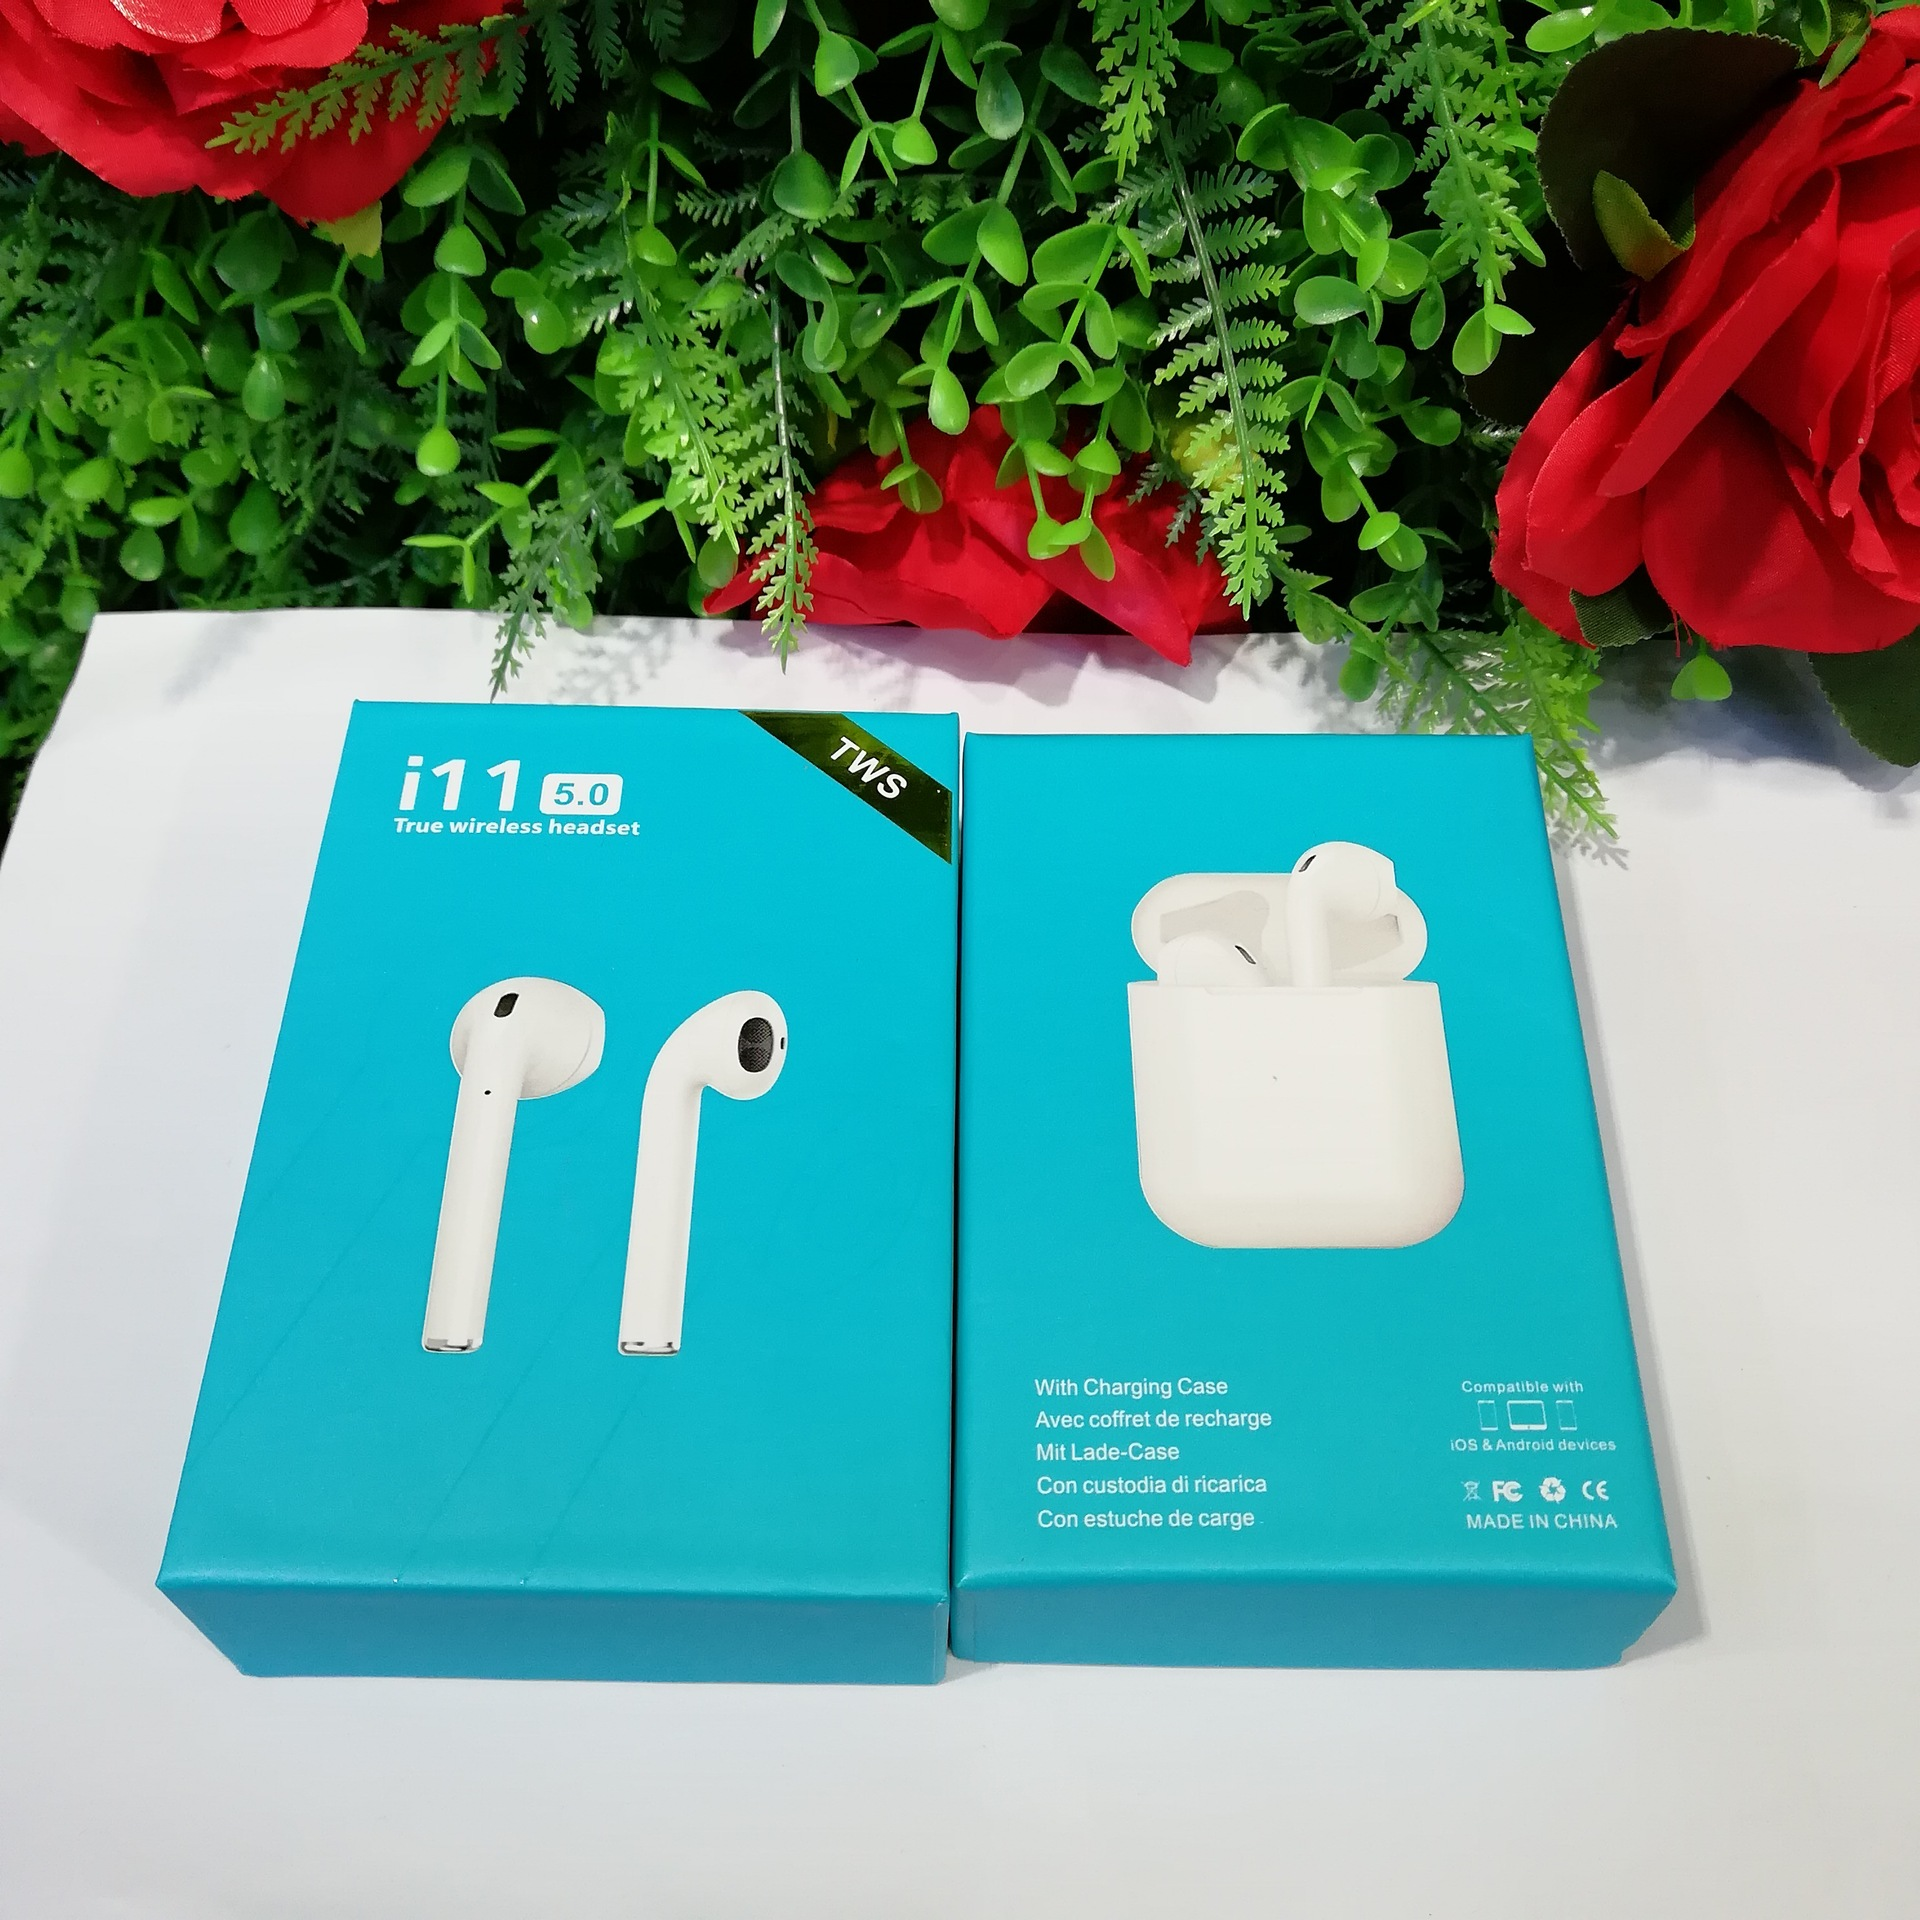 i11 TWS Bluetooth 5 0 Touch Wireless Earphones Earpieces mini Earbuds i7s With Mic For iPhone X 7 8 Samsung S6 S8 Xiaomi Huawei in Phone Earphones Headphones from Consumer Electronics